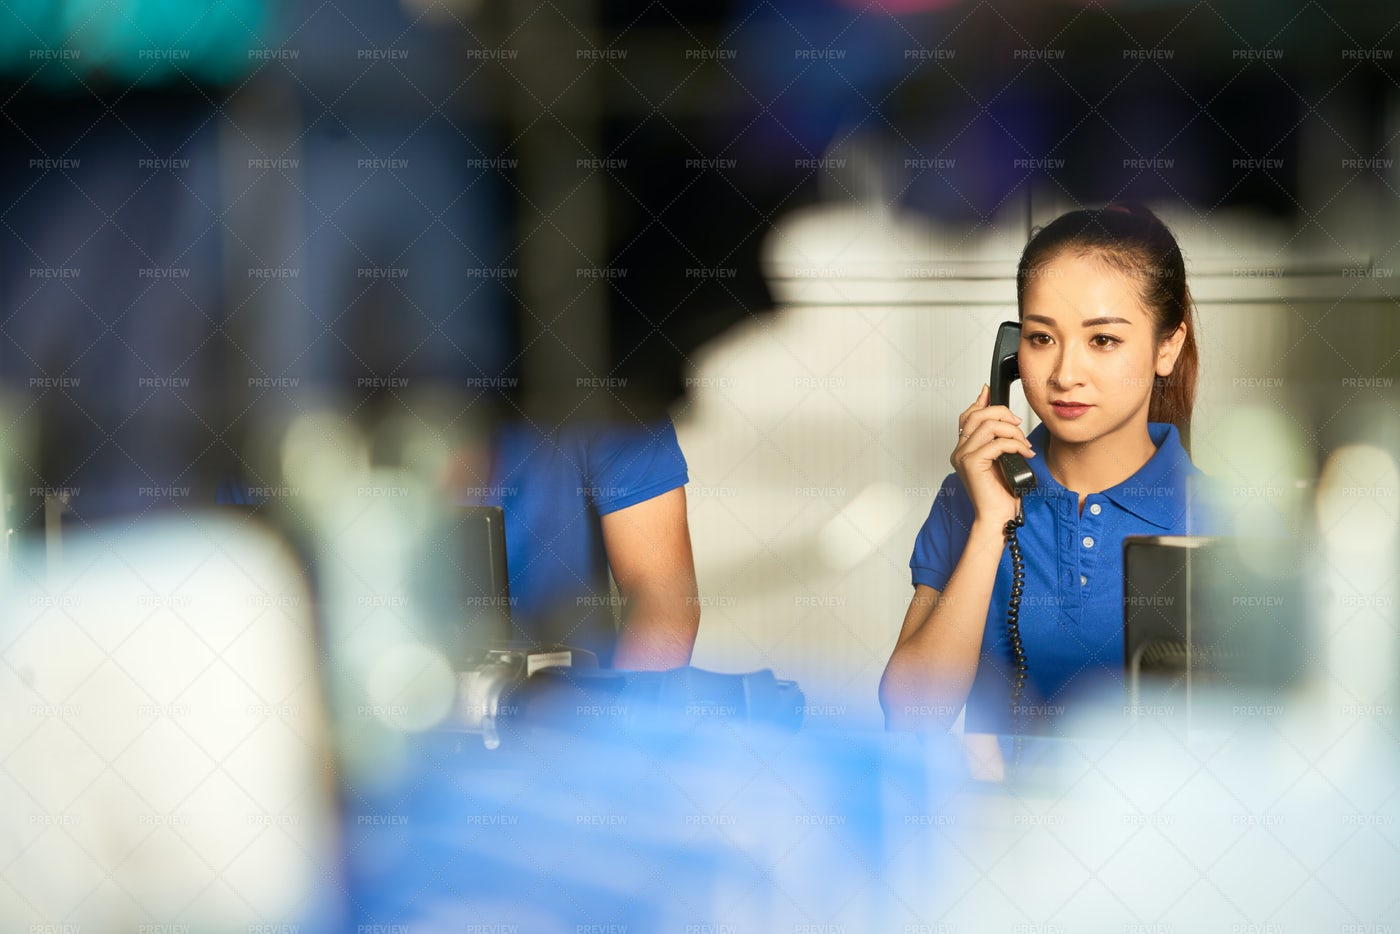 Consulting Customer On The Phone: Stock Photos